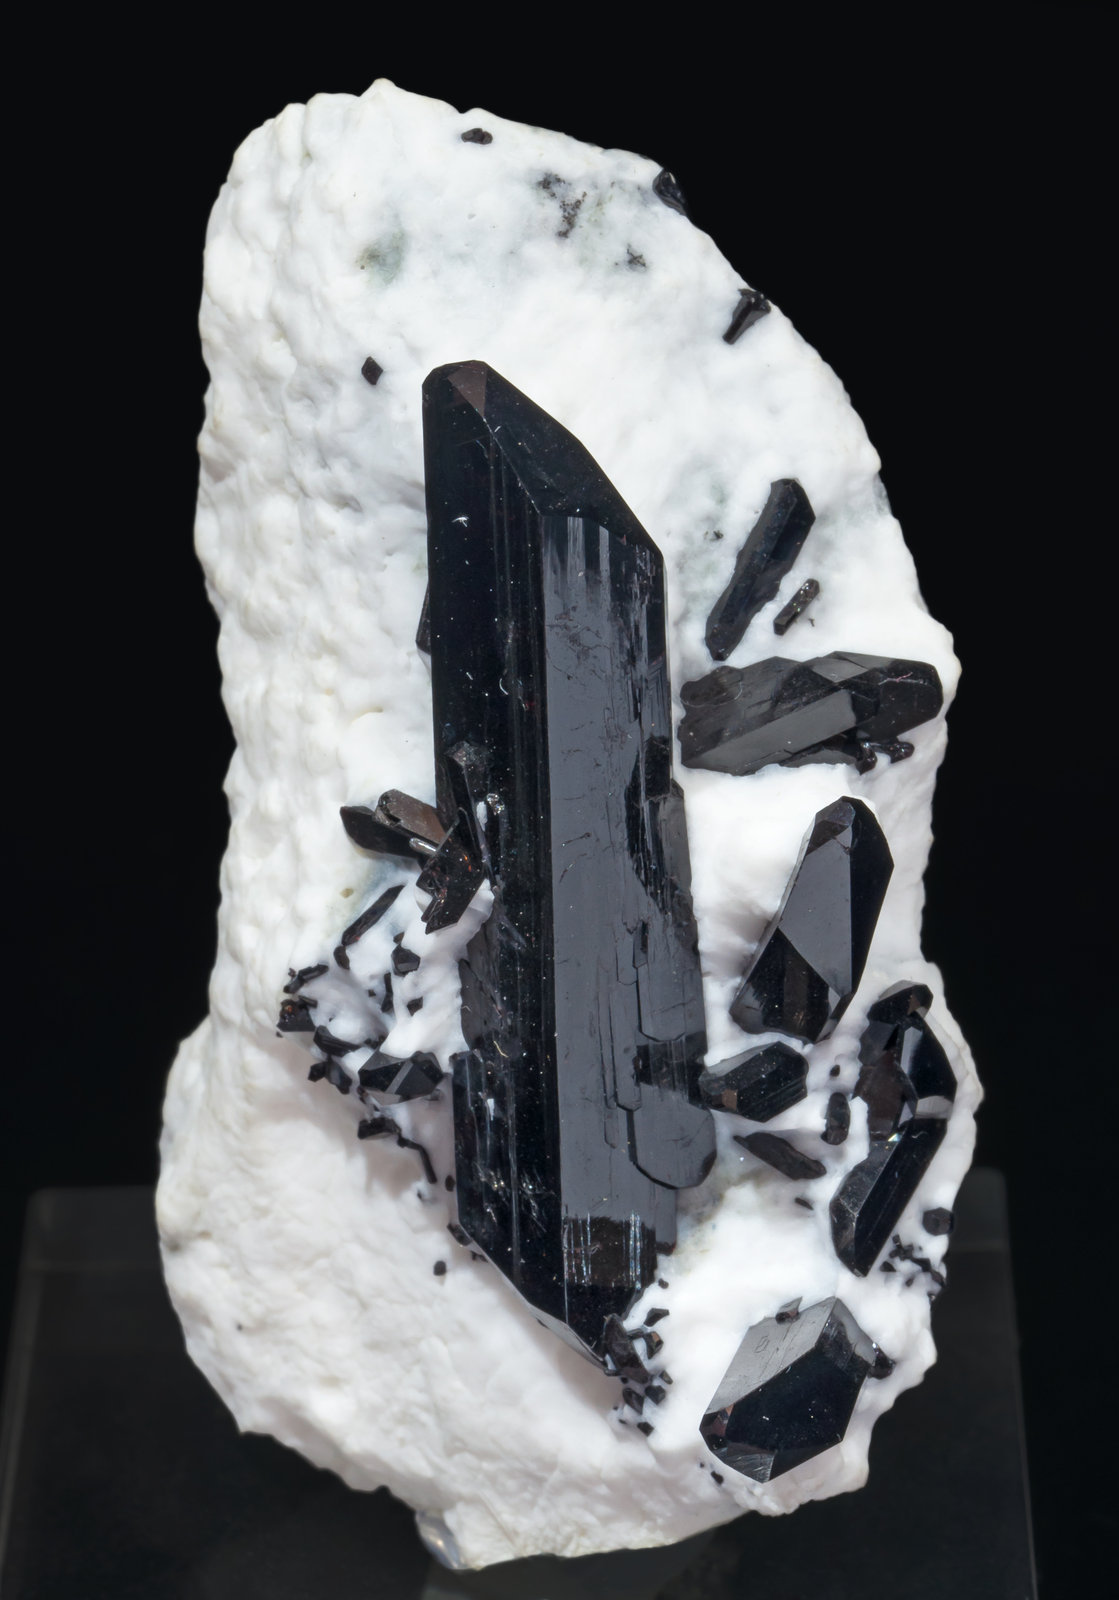 specimens/s_imagesAI3/Neptunite-NB26AI3f.jpg